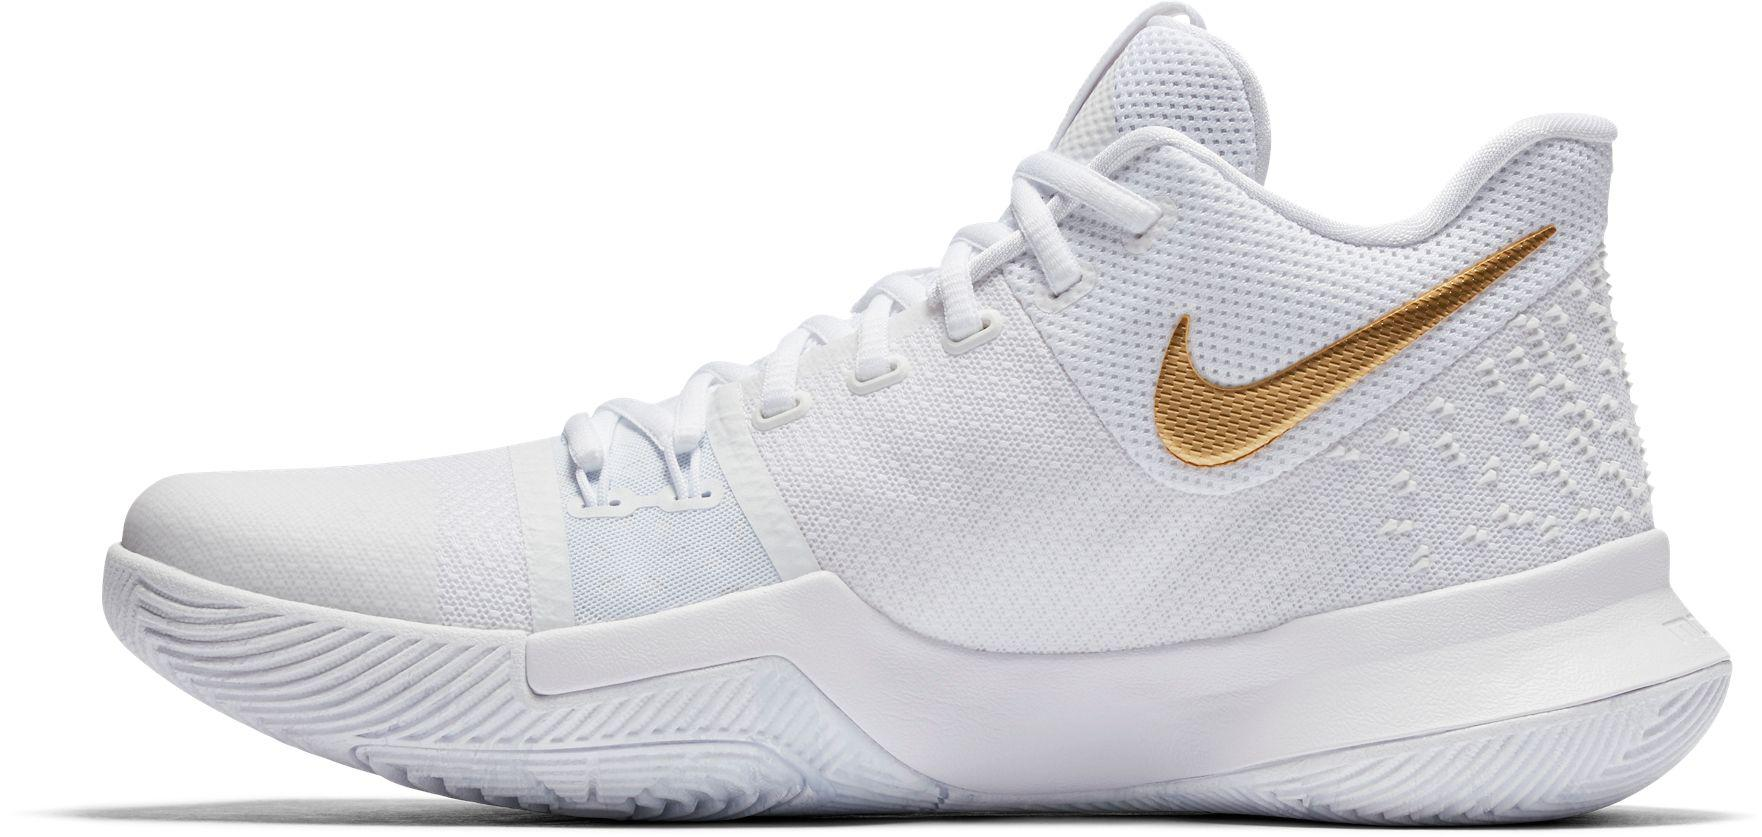 99d05780d844 Nike Kyrie 3 Basketball Shoes in White for Men - Lyst